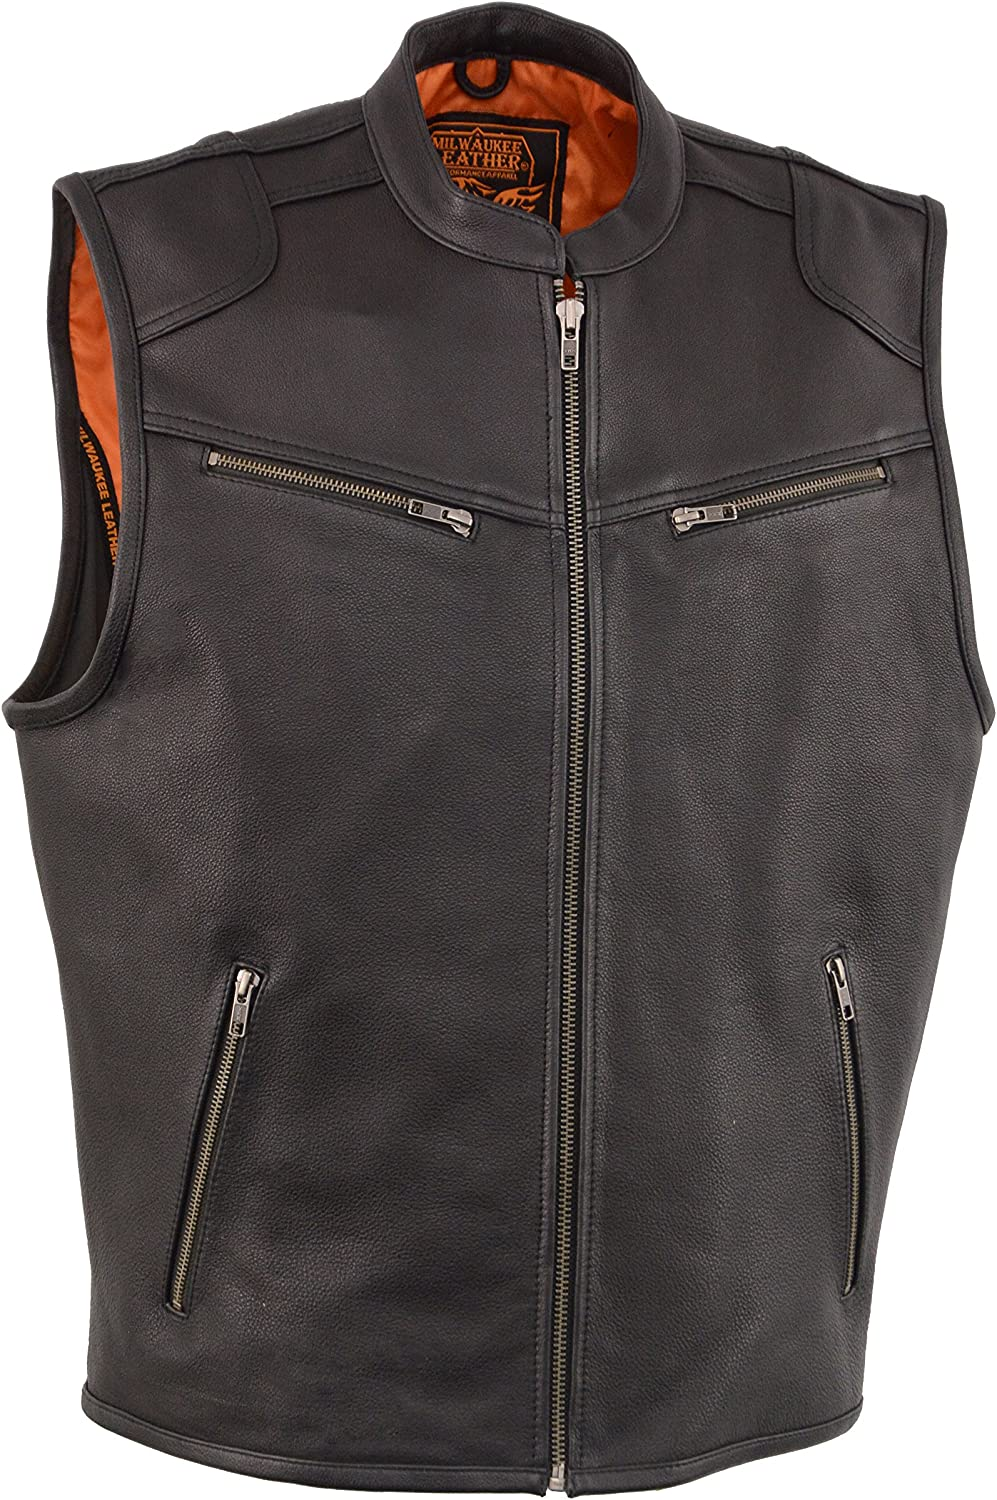 Large Stay 25/° Cooler than Standard Vests Men/'s Leather Zipper Front Vest w// Cool Tec Technology